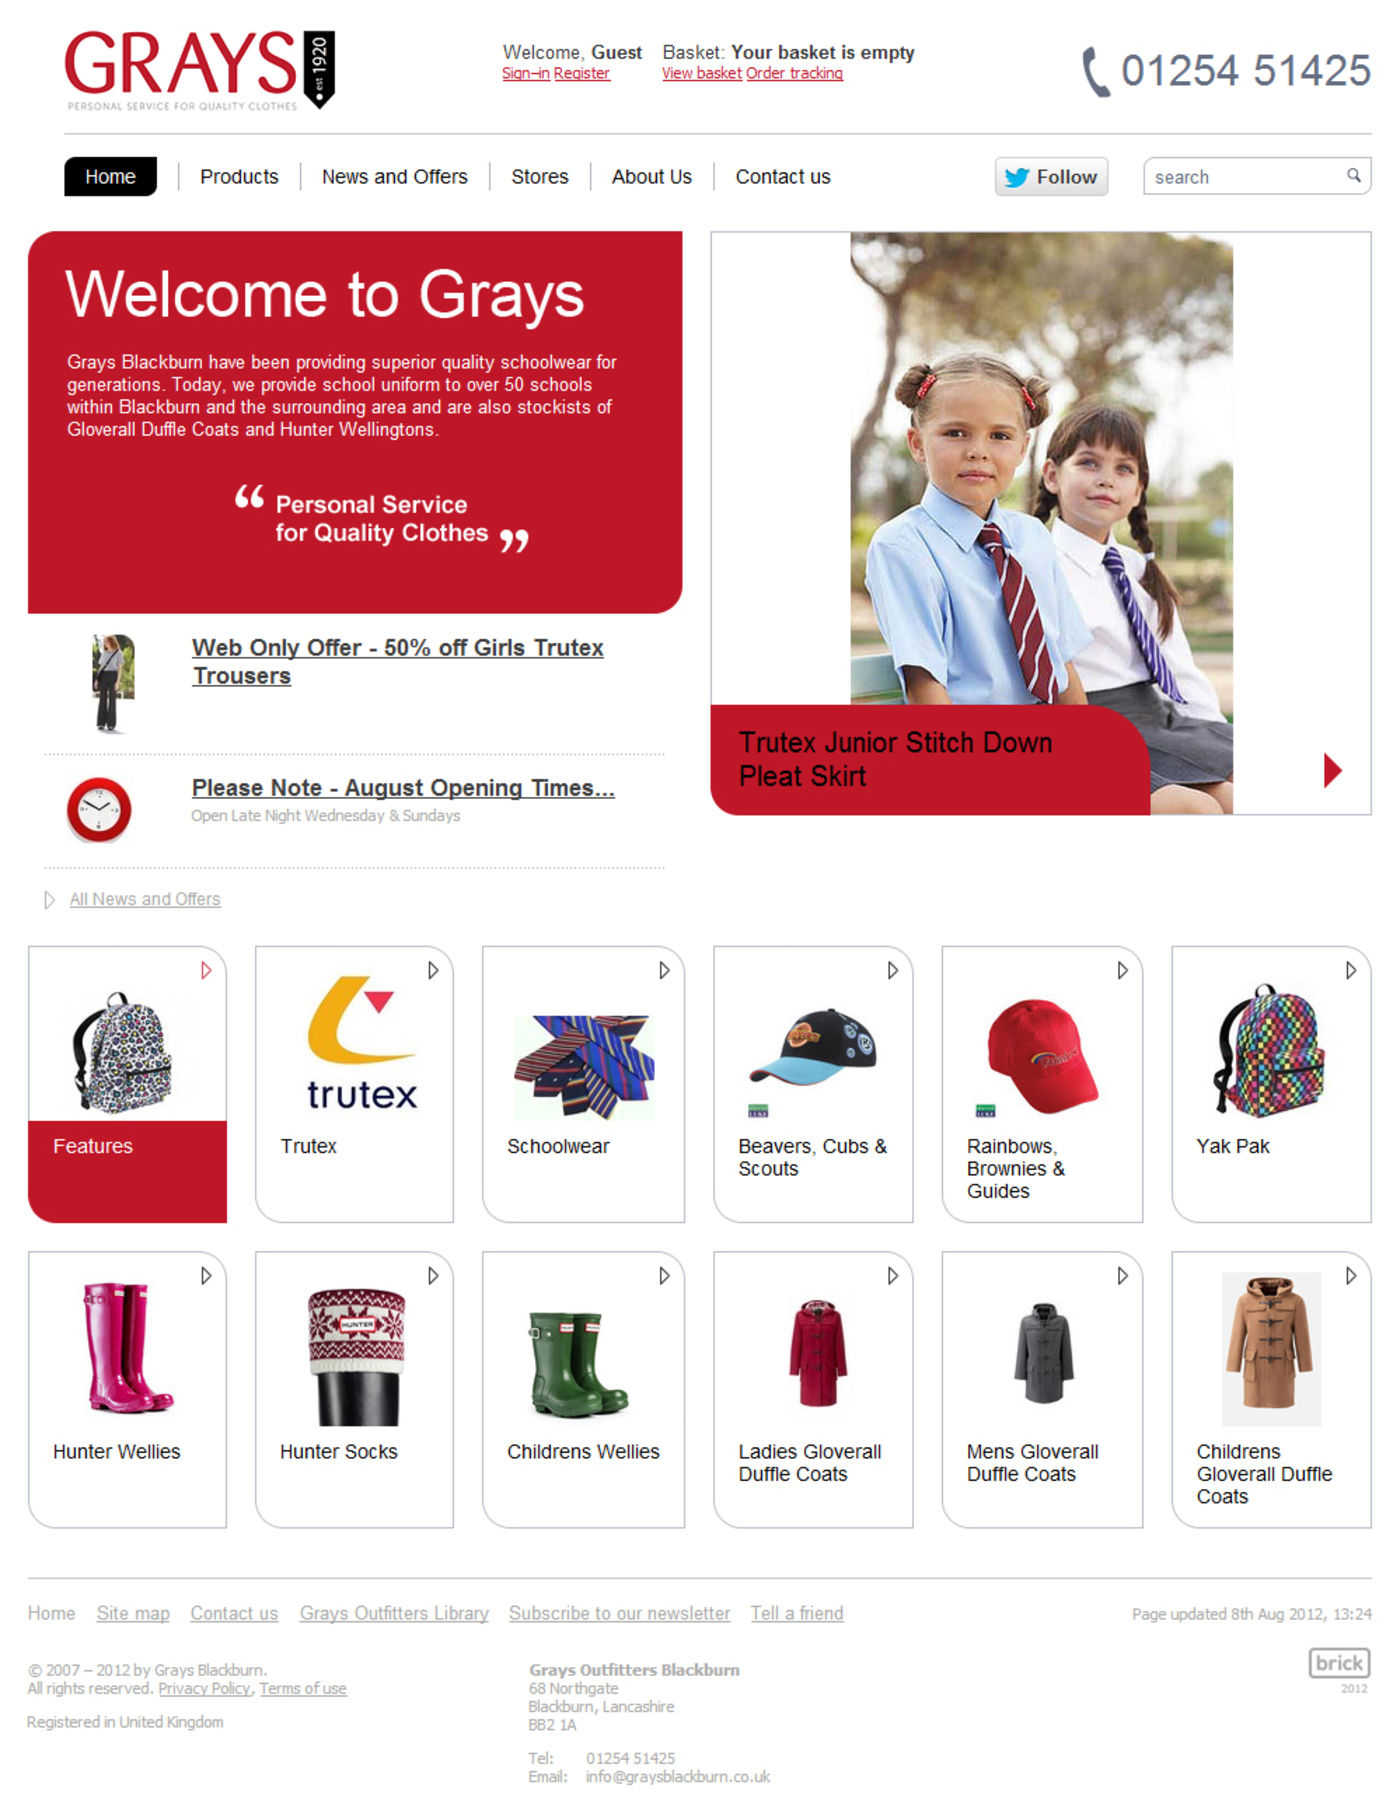 Grays Outfitters Blackburn Home Page